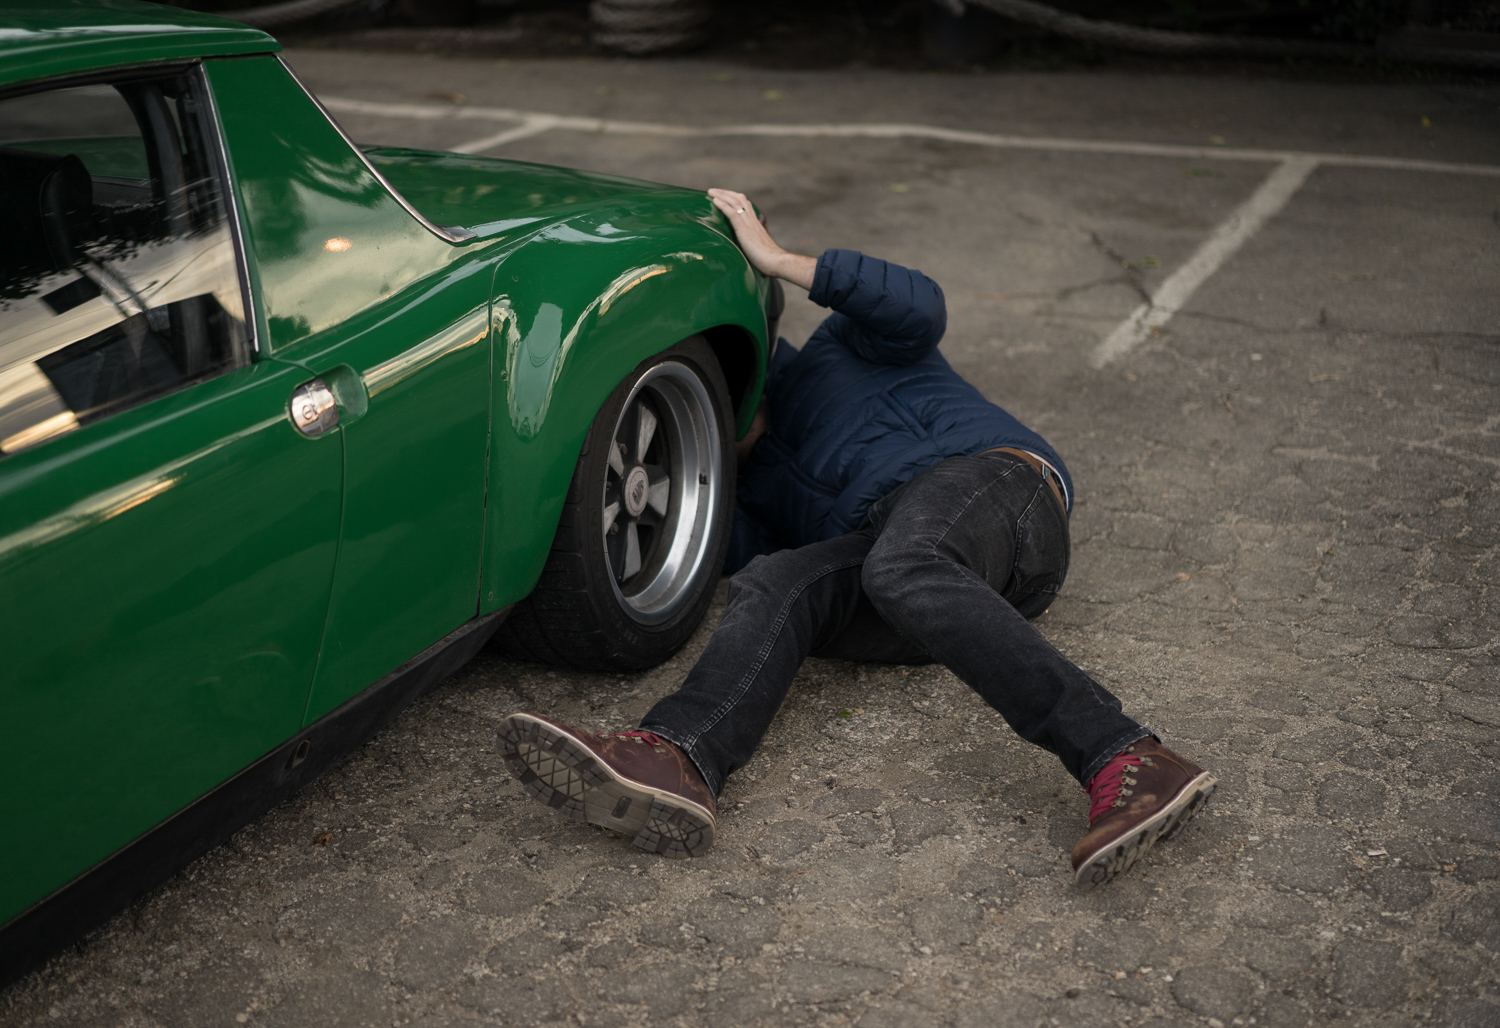 1974 Porsche 914 fixing on the ground